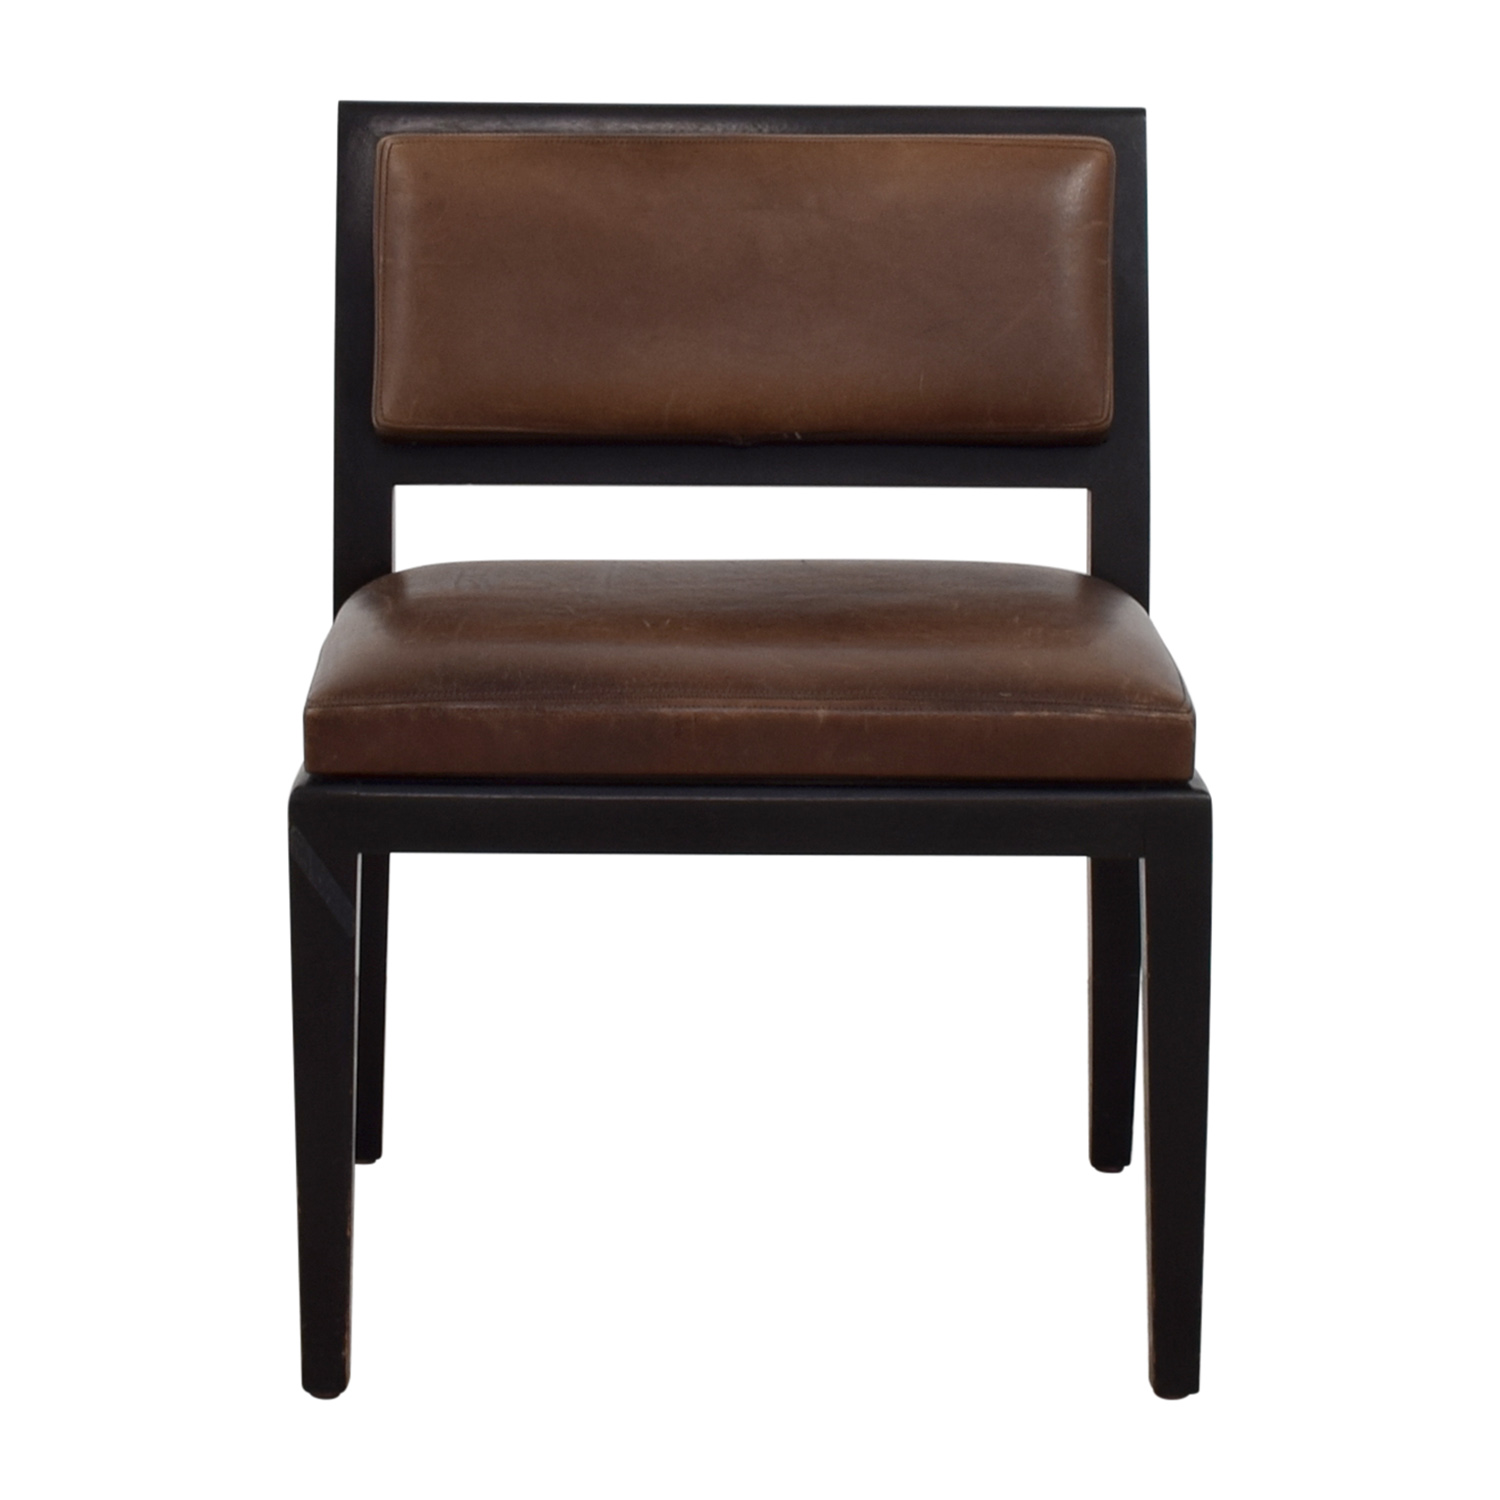 Richard Michaan Richard Michaan Brown Leather Chair dimensions